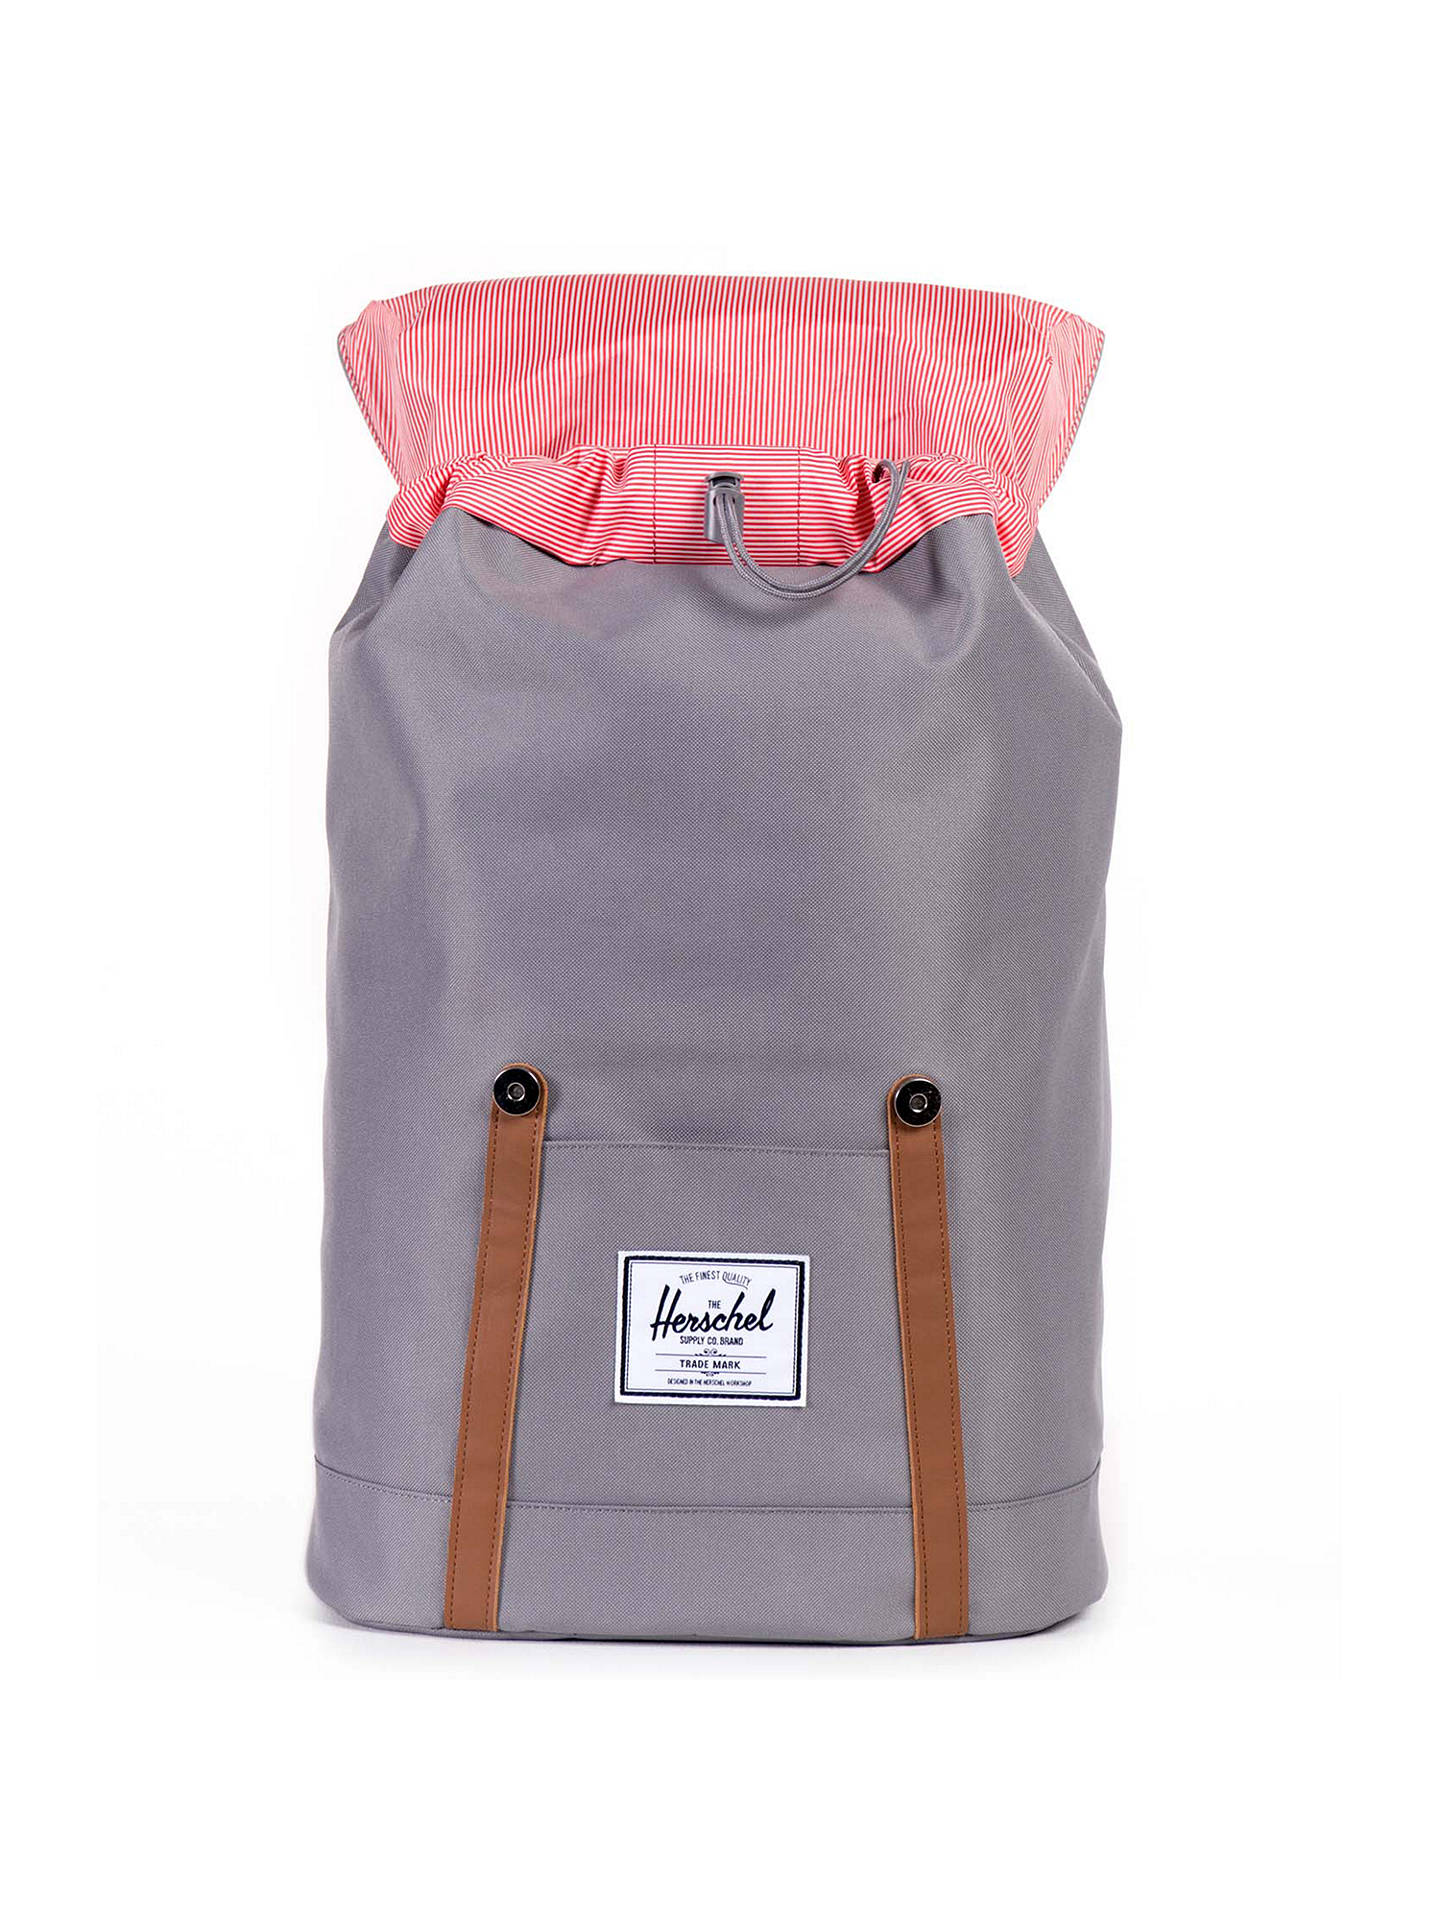 0907ca0bf2d8 ... Buy Herschel Supply Co. Retreat Backpack, Grey/Tan Online at  johnlewis.com ...